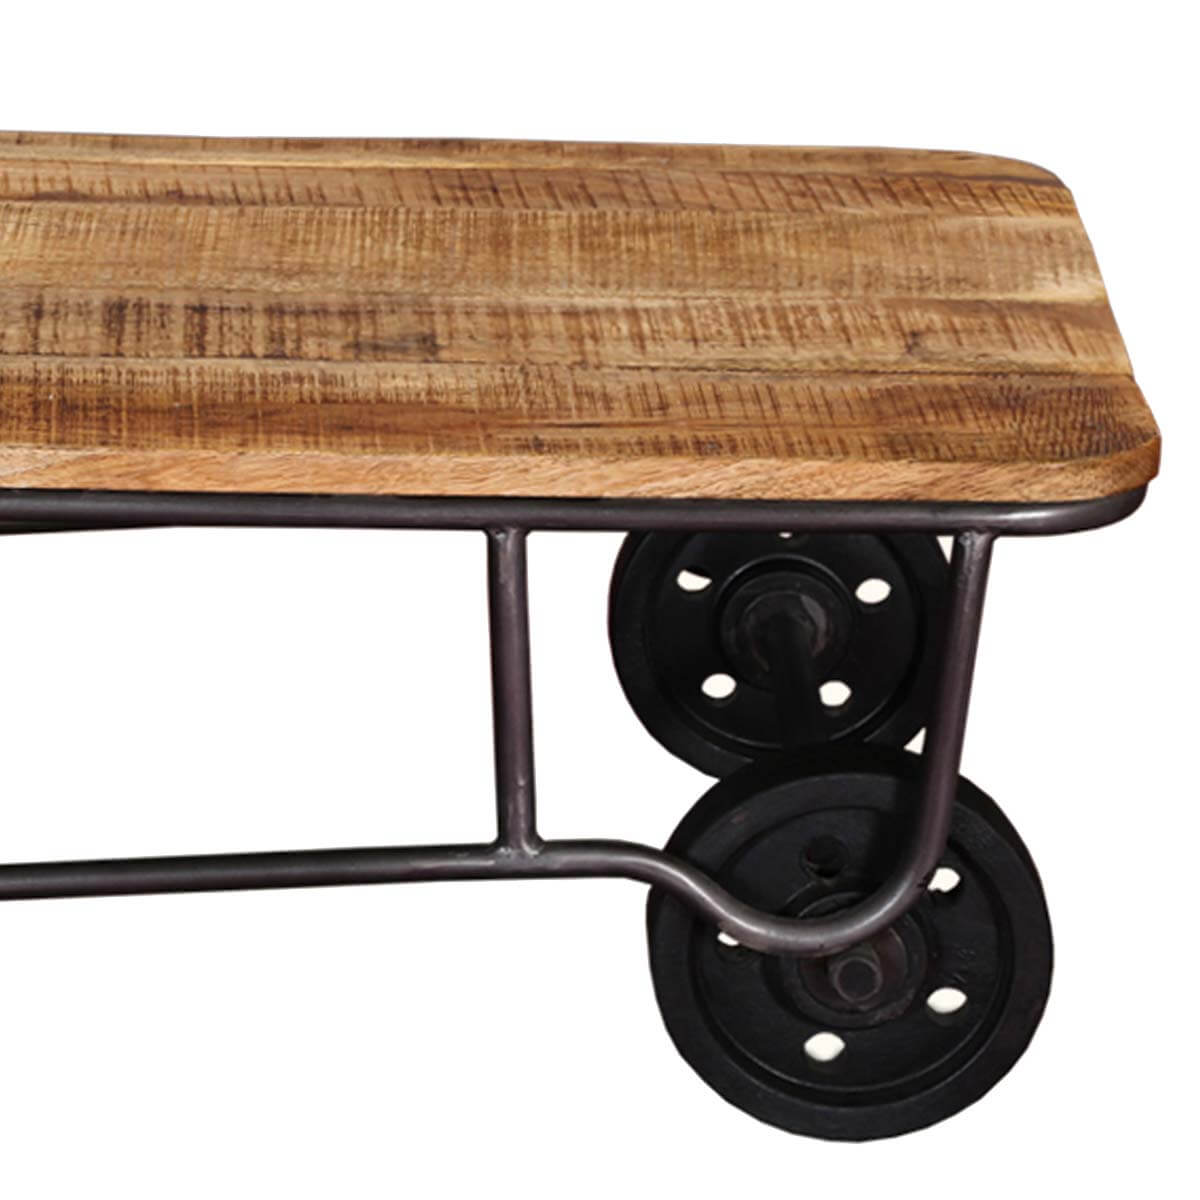 Industrial Rustic Mango Wood & Iron Rolling Coffee Table. Concrete Table Tops. Router Table Parts. White Desk Computer. Sentry Table Pads. Cooling Drawers Refrigerator. Purple Desk Lamp With Organizer. Extendable Patio Dining Table. Rolling Tool Cart With Drawers